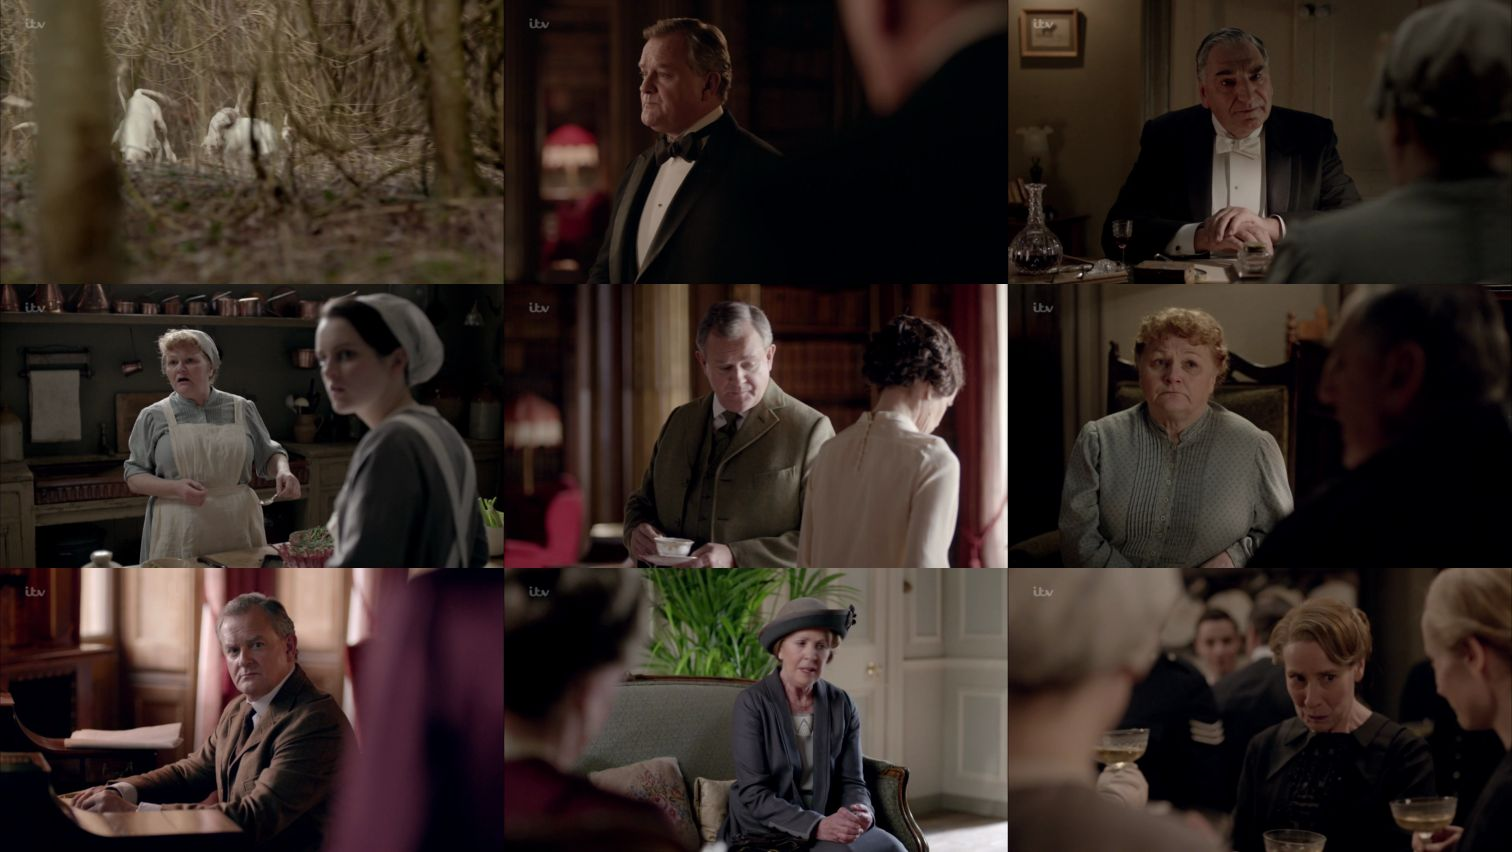 Downton Abbey S06E01 HDTV x264-ORGANiC